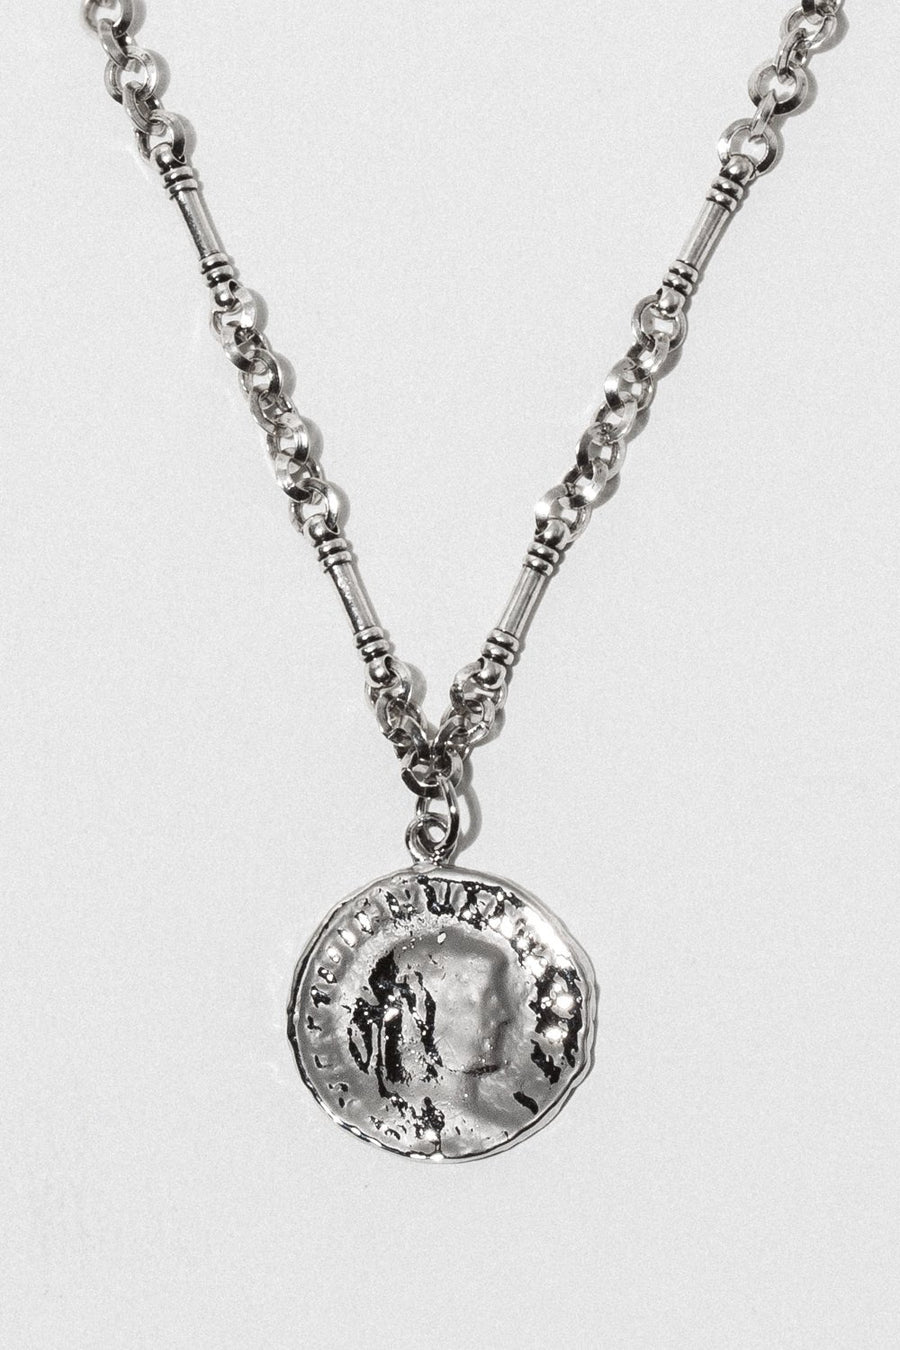 Goddess Jewelry Silver / 20 Inches Roma Coin Necklace